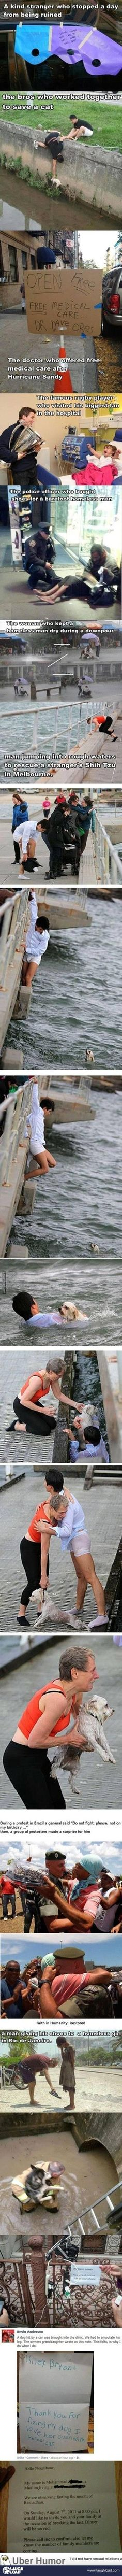 Faith in Humanity Restored Compilation 2